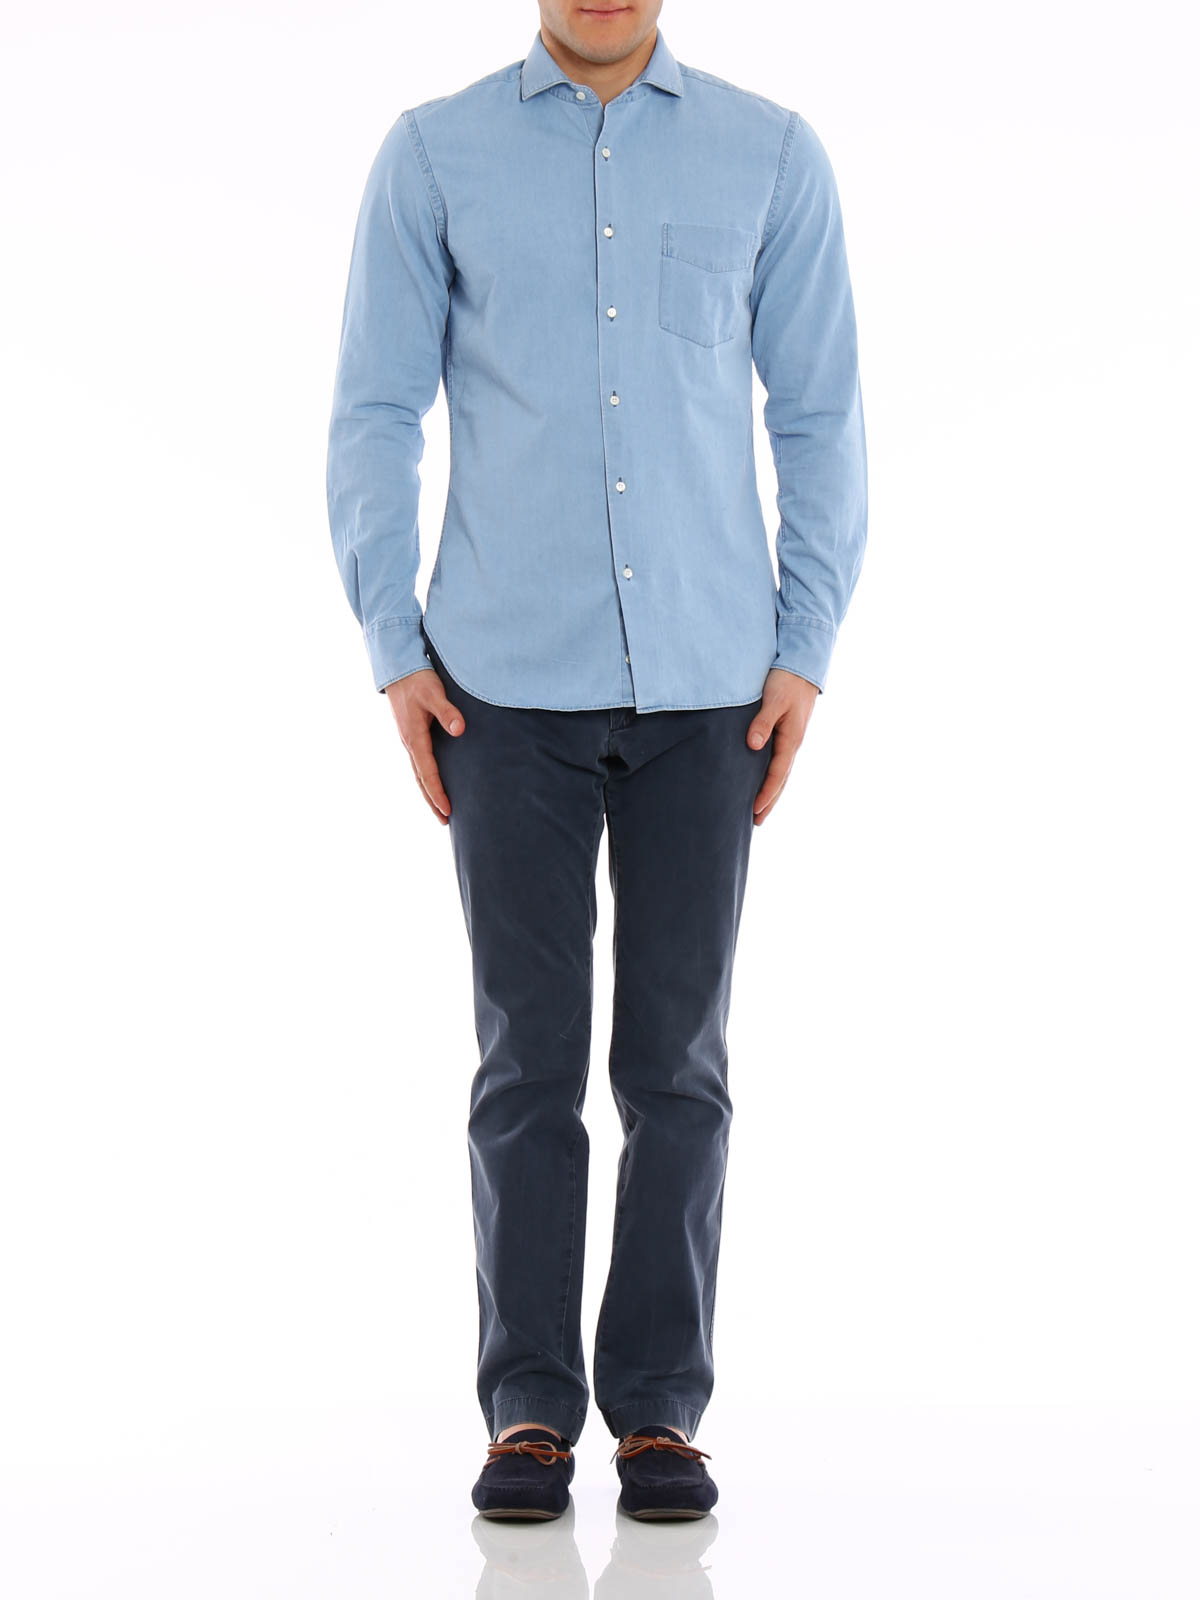 d3cef3ed869f aspesi-online-shirts-light-denim-shirt-00000066066f00s012.jpg